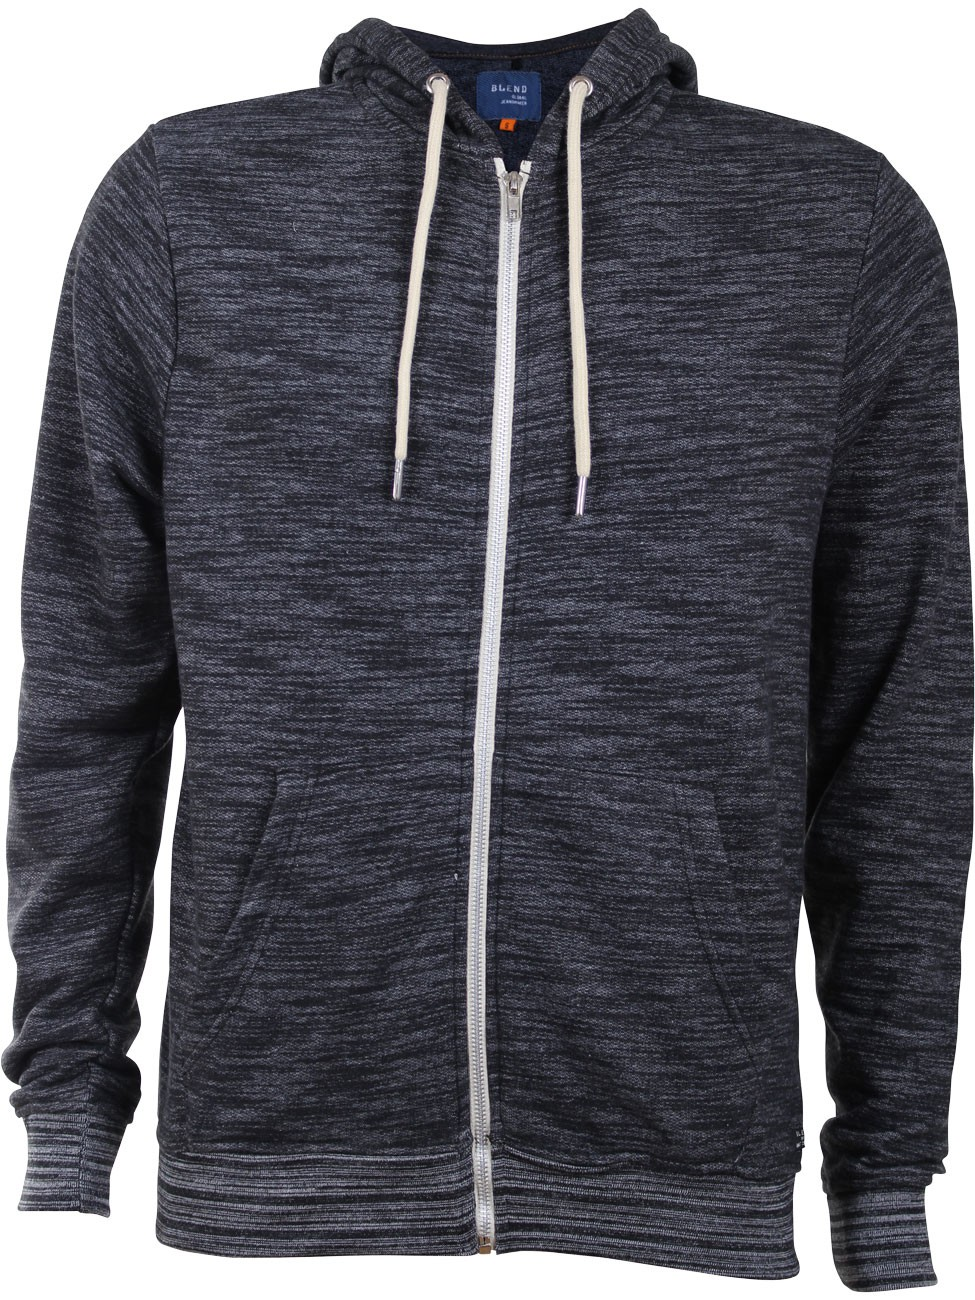 Blend Herren Sweater mit Kapuze Regular Fit